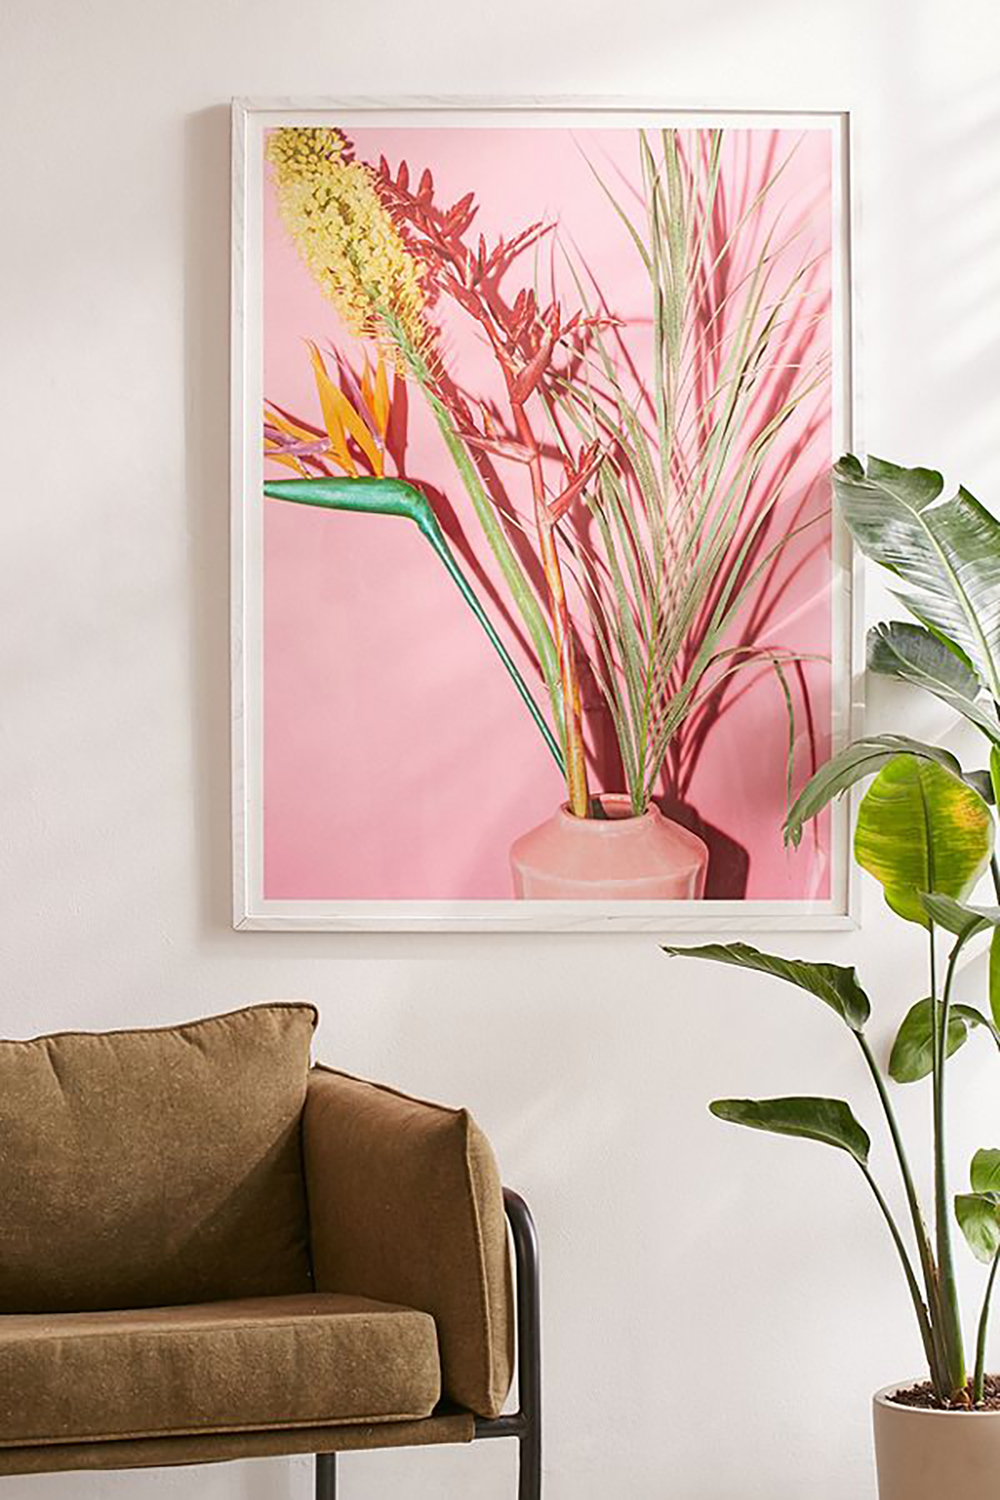 Tropical plants art print by Kimberley Dhollande - Paintings, prints inspired by jungle - Transform your home into a tropical paradise | Aliz's Wonderland